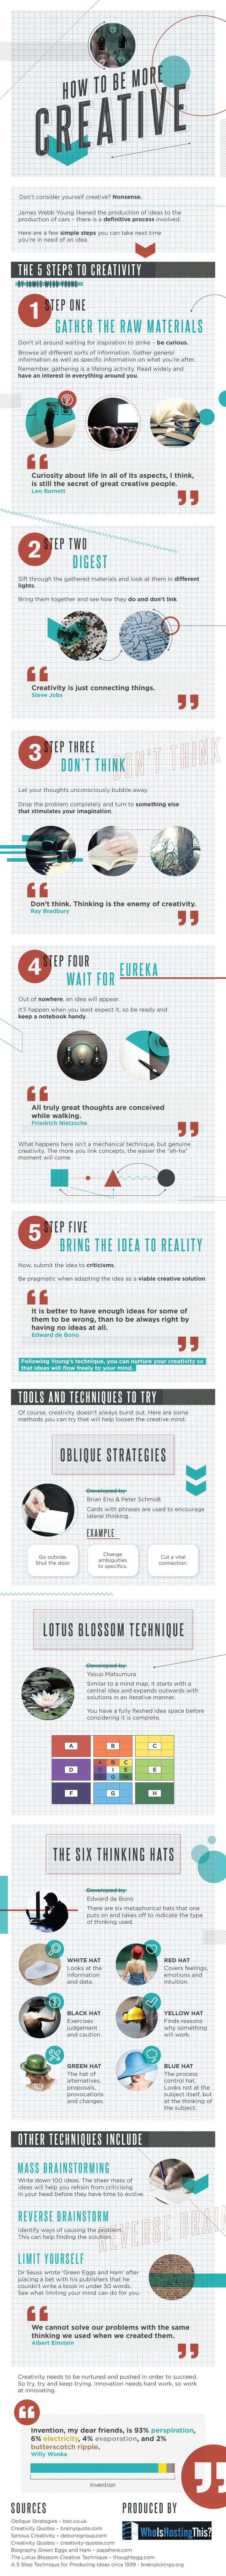 How to Be More Creative [Infographic] by Who Is Hosting This: The Blog